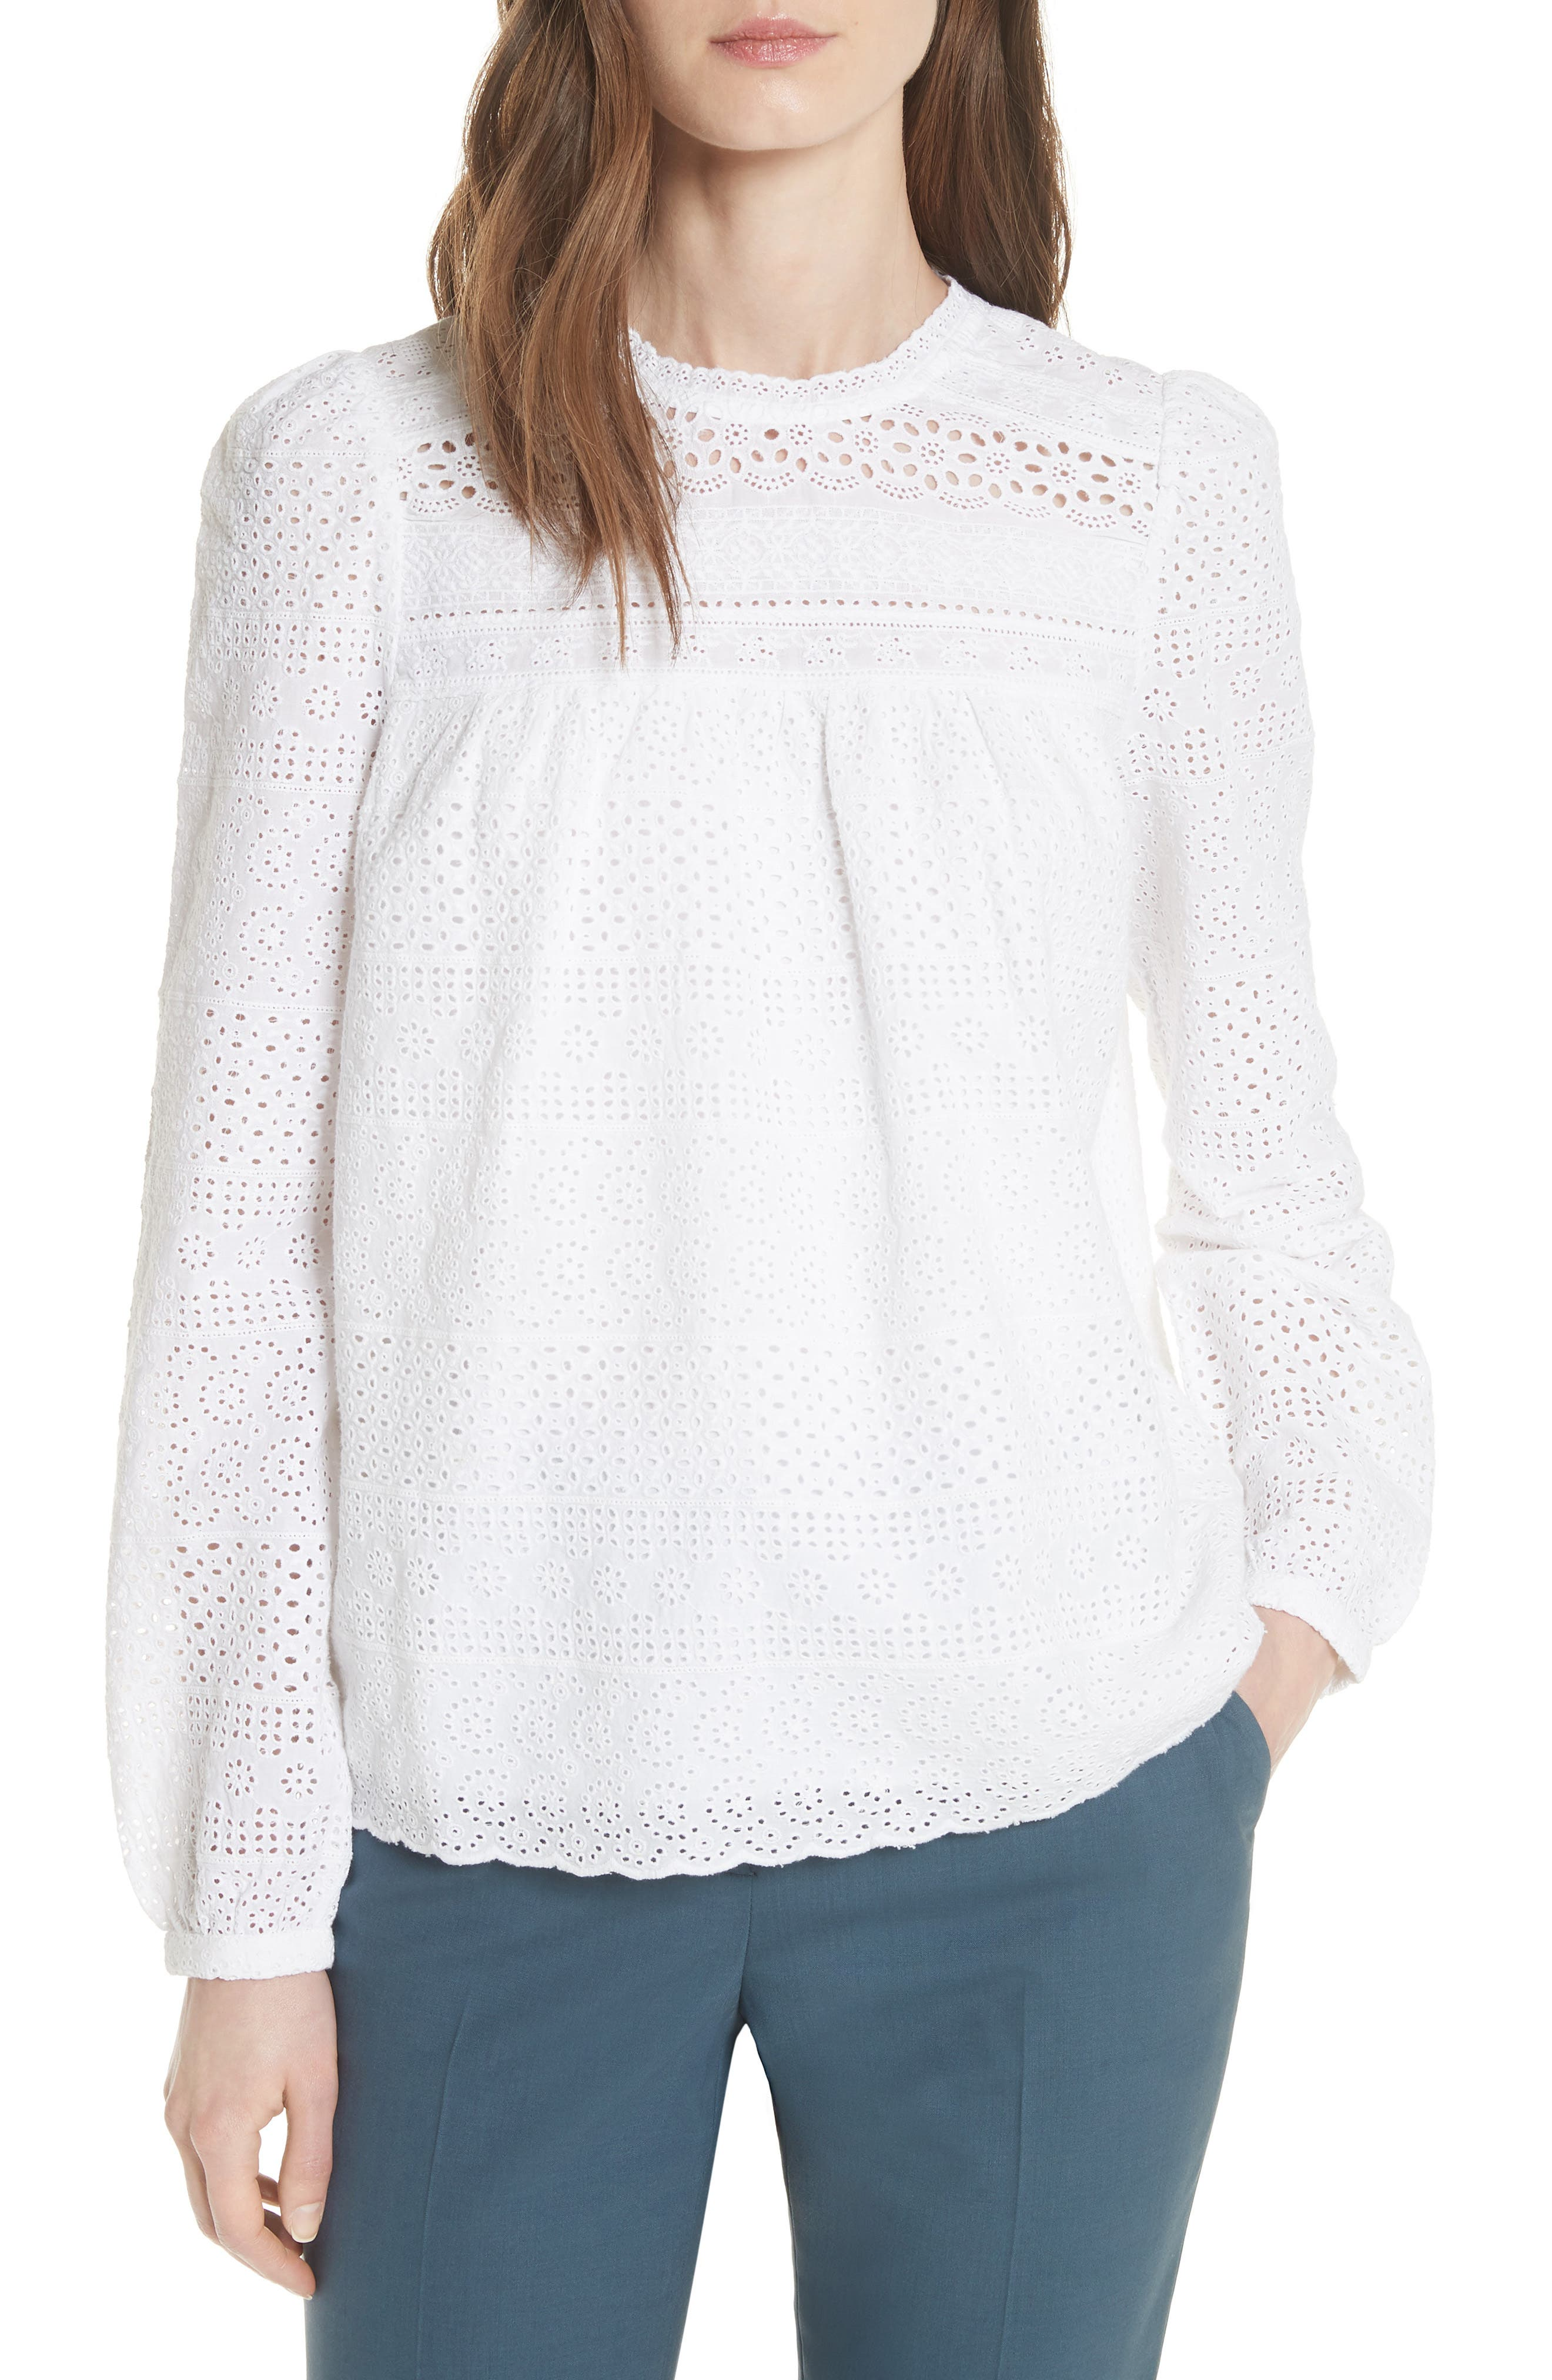 Needle & Thread Reverie Lace Top